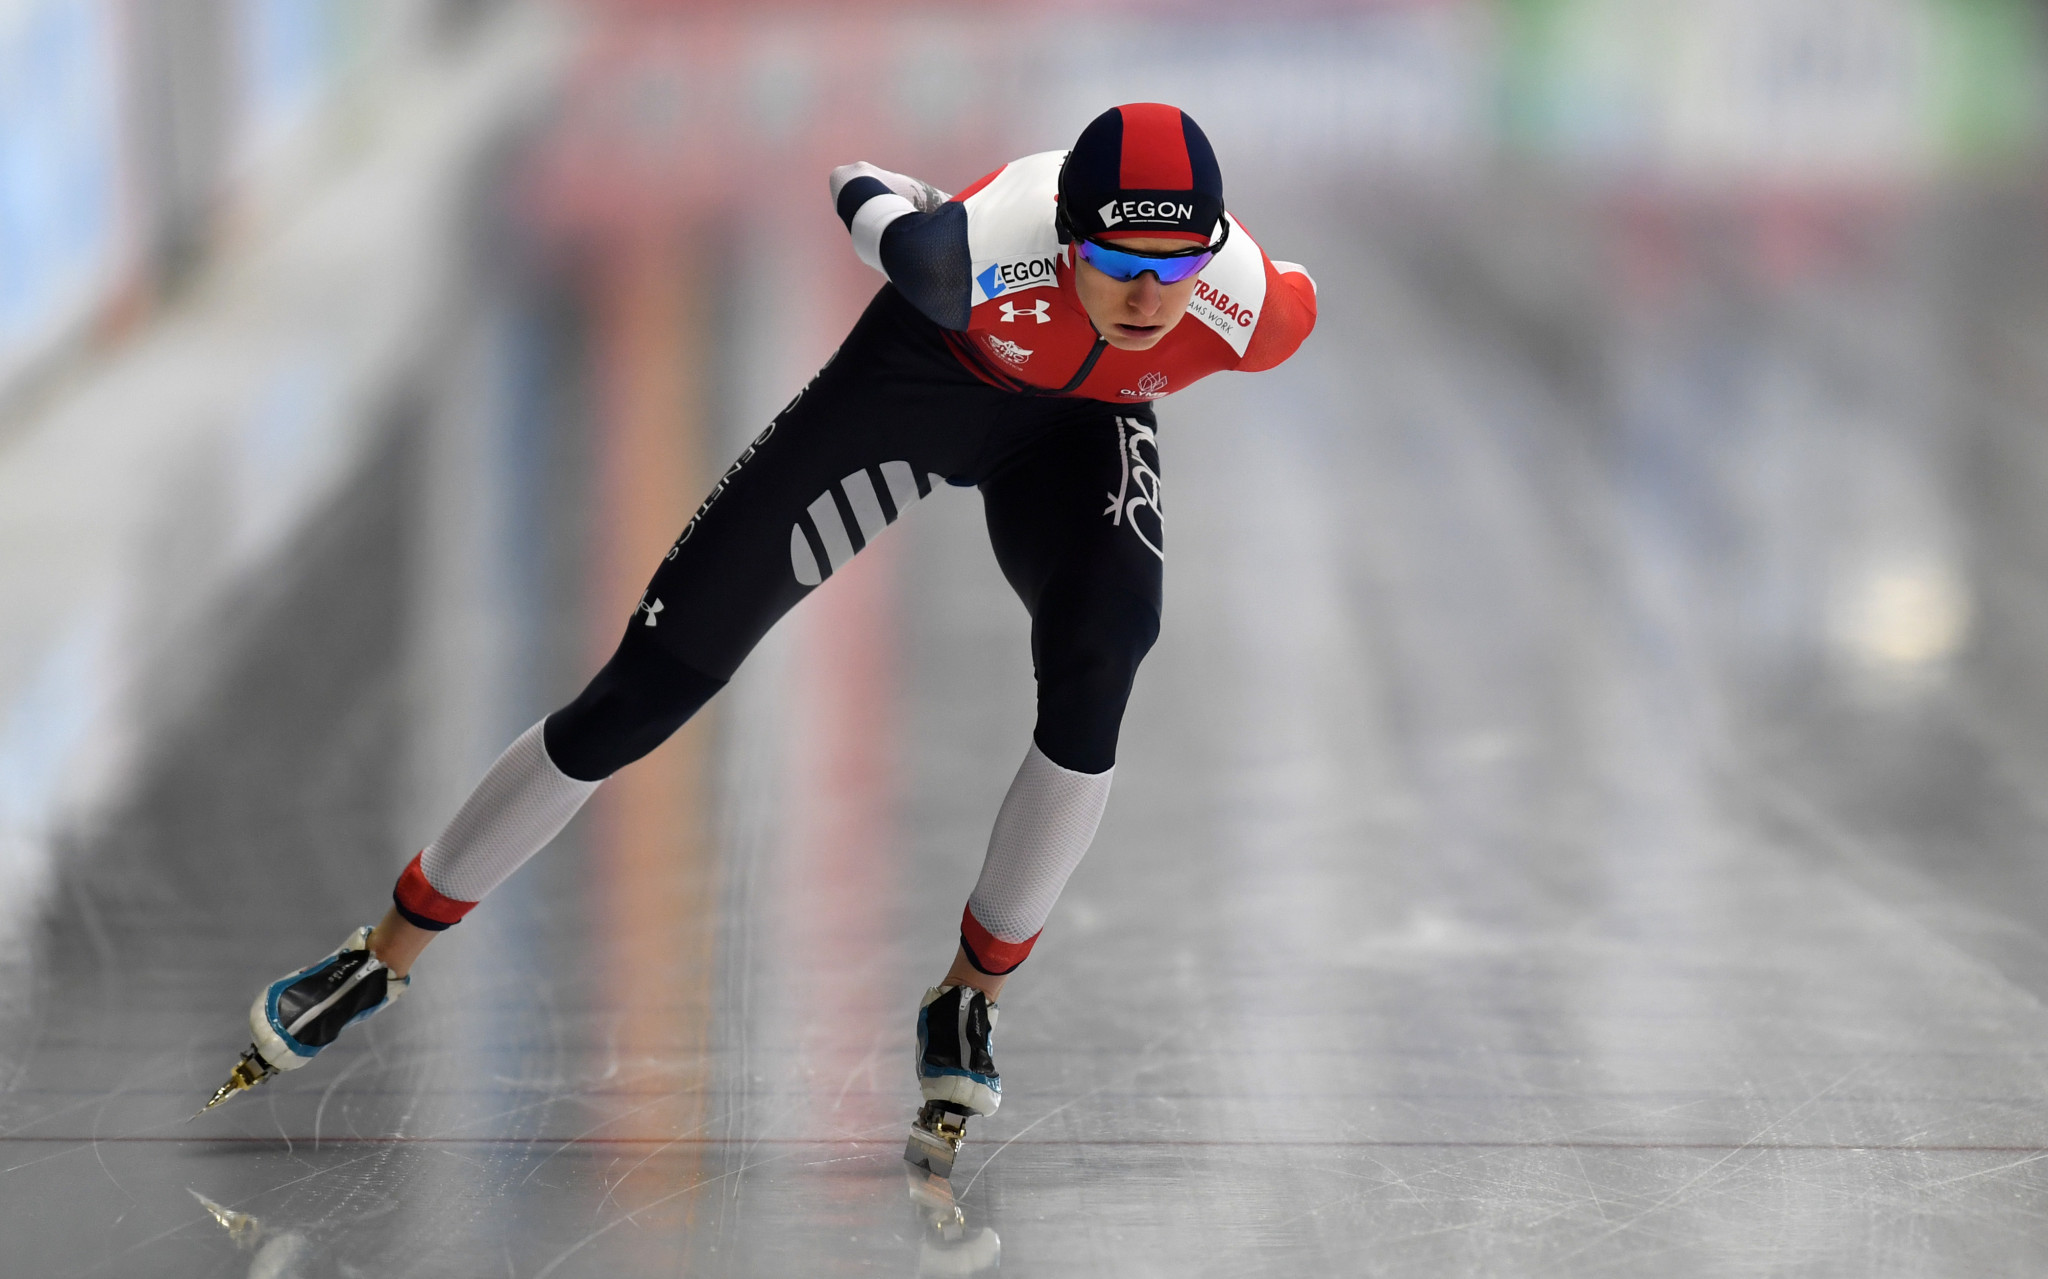 Sáblíková lowers track record at ISU Speed Skating World Cup in Poland